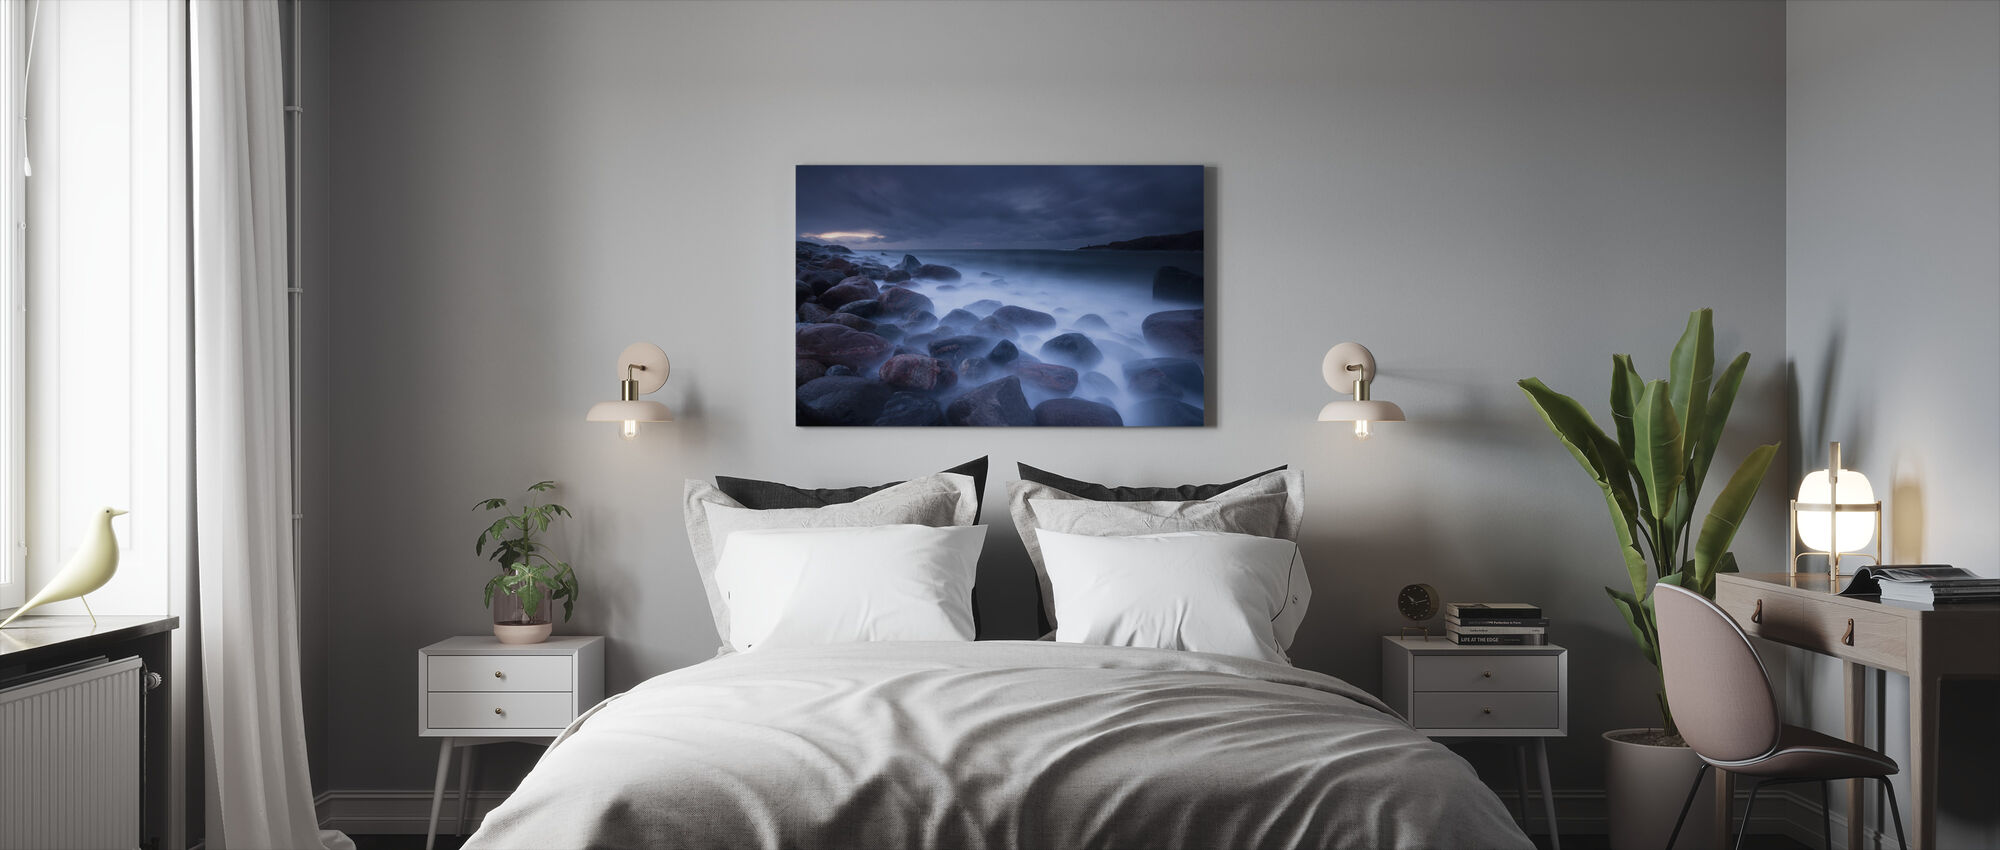 Ghostly - Canvas print - Bedroom